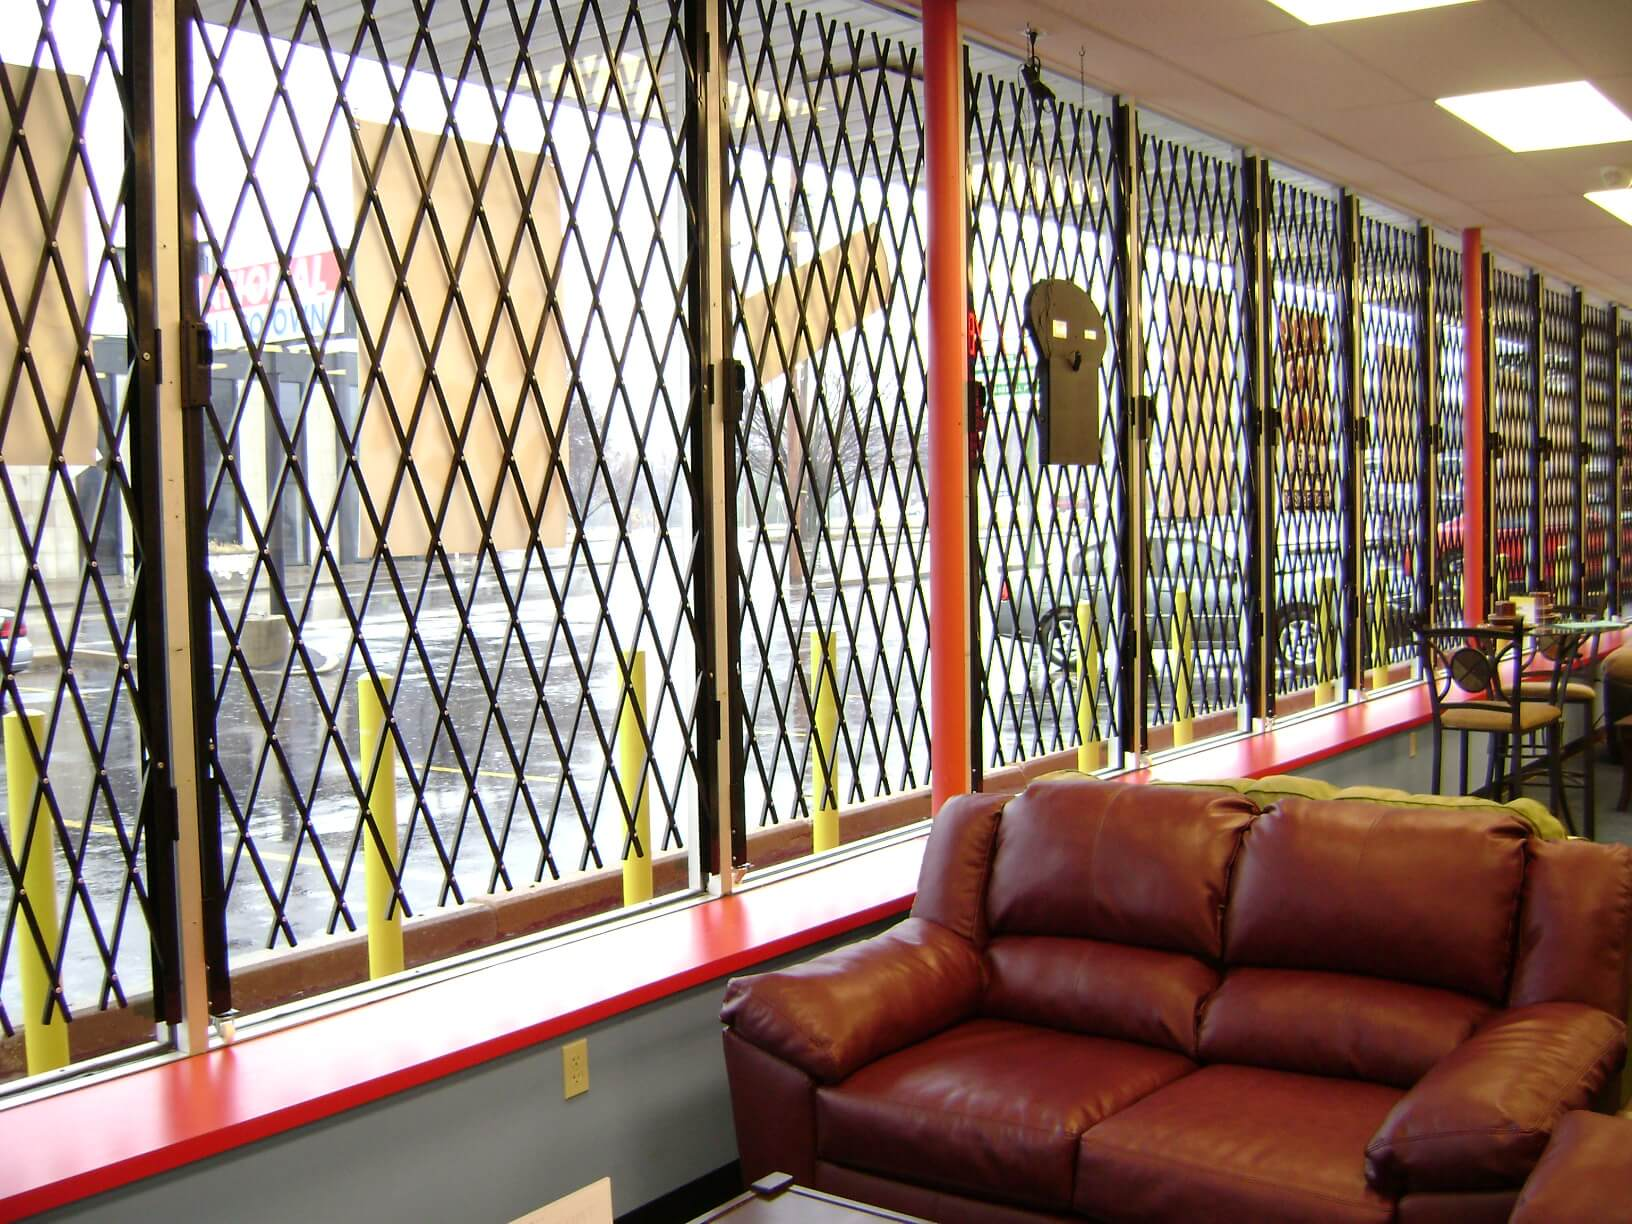 Commercial Doors S04 Concertina Safety Screen System